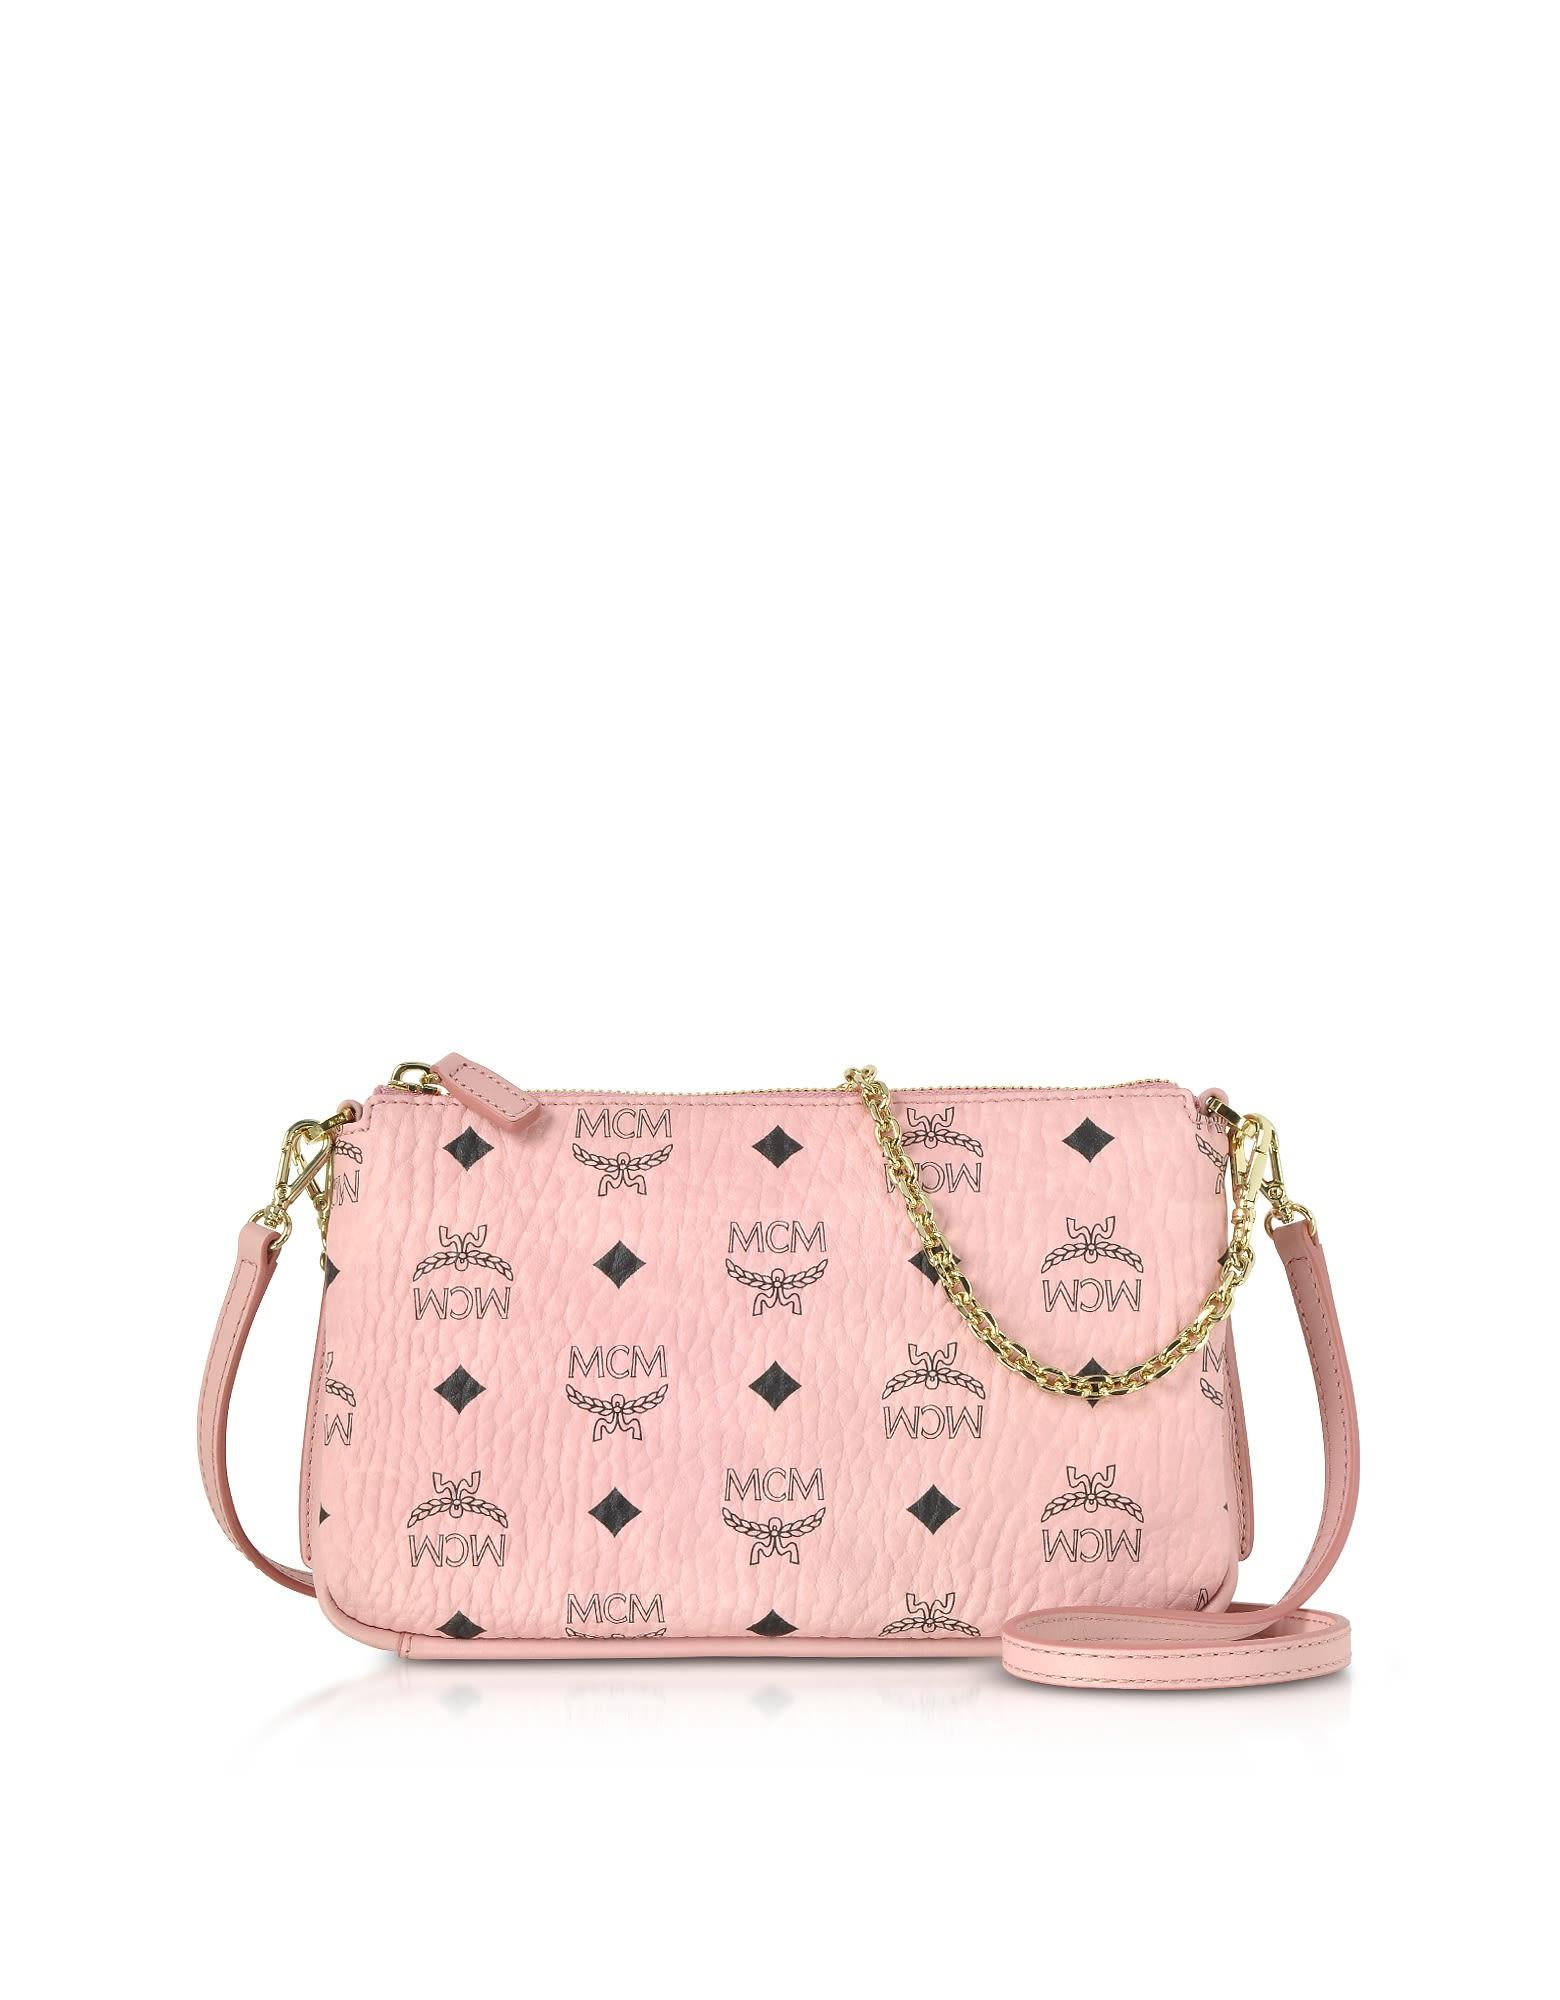 32fe2e1b04ebf2 Mcm Millie Visetos Soft Pink Medium Zip Crossbody Bag | ModeSens